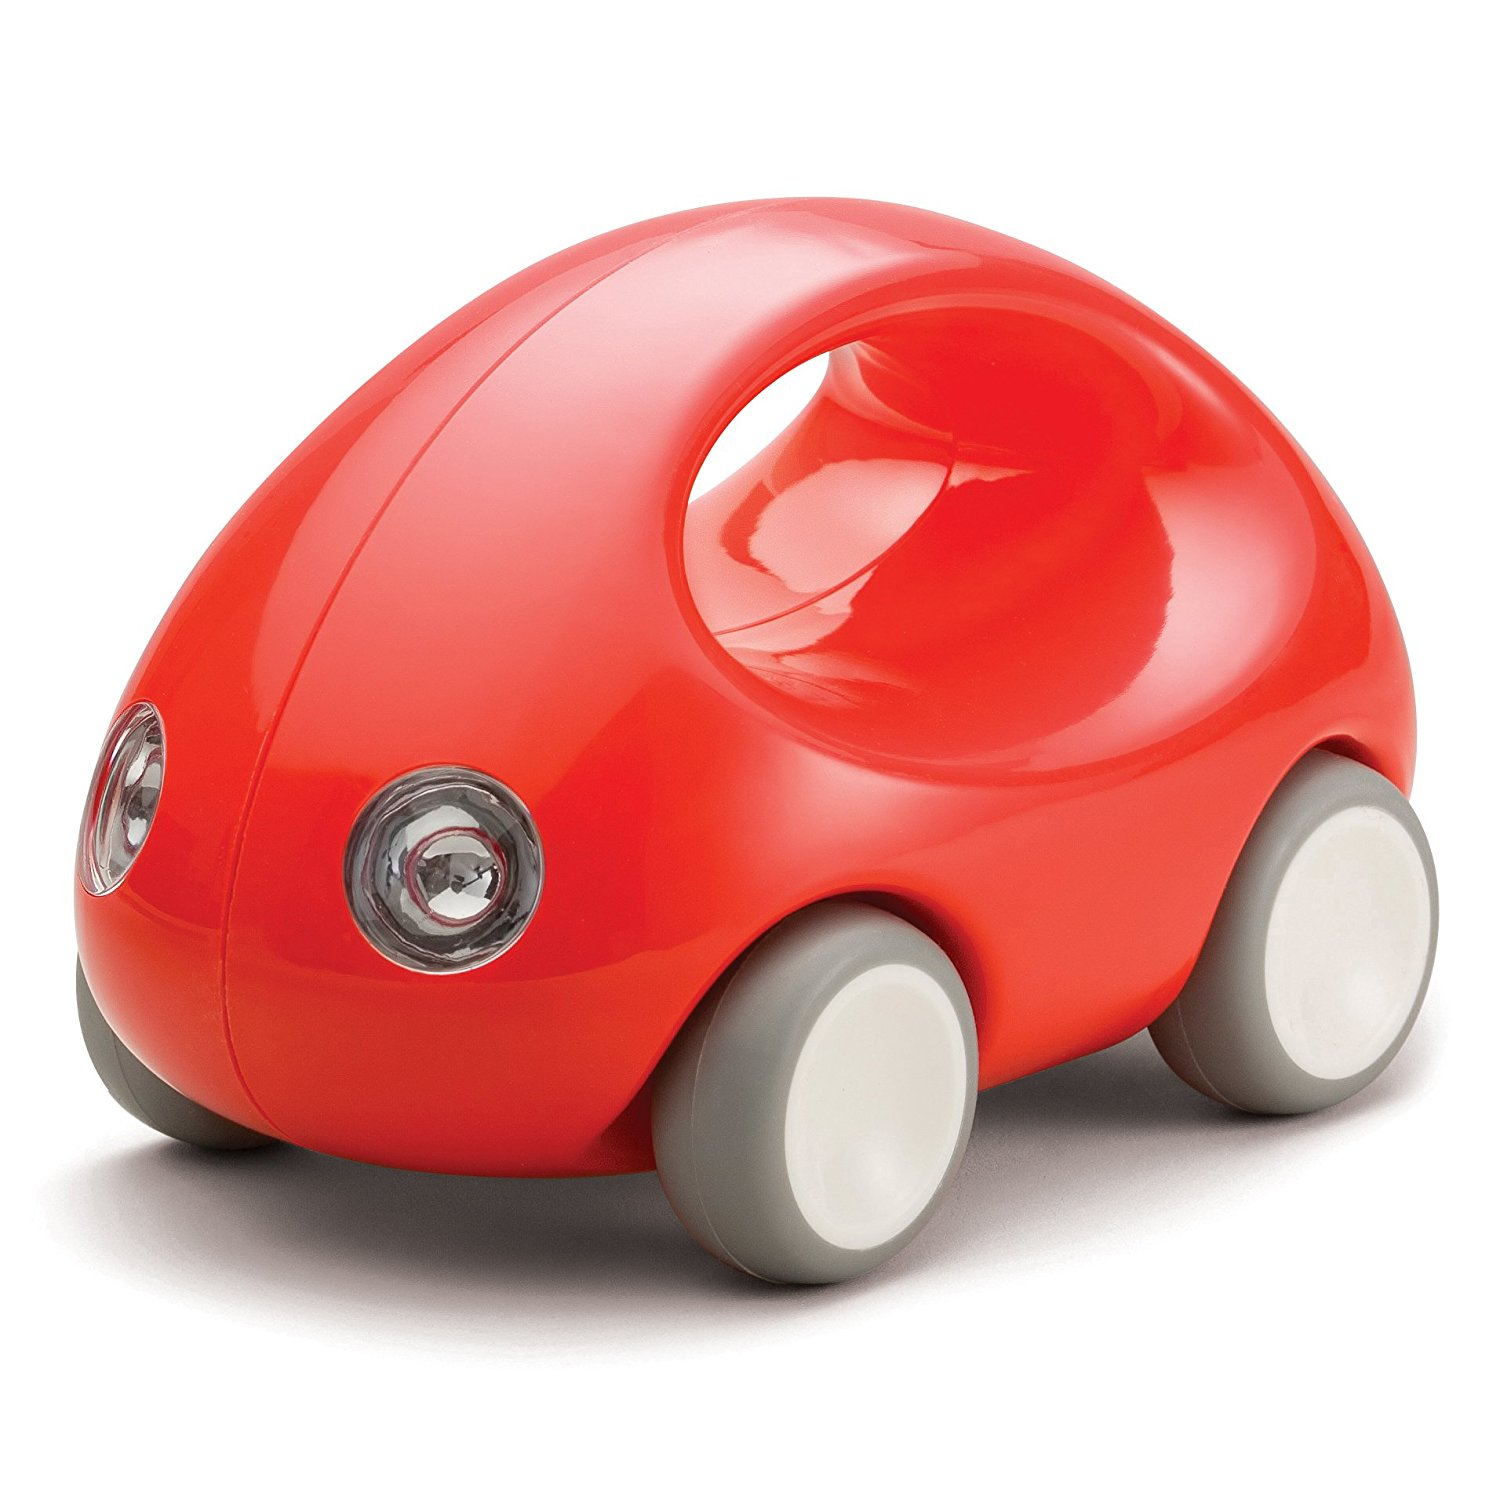 Amazon.com: Kid O Go Car Early Learning Push & Pull Toy - Red: Toys ...